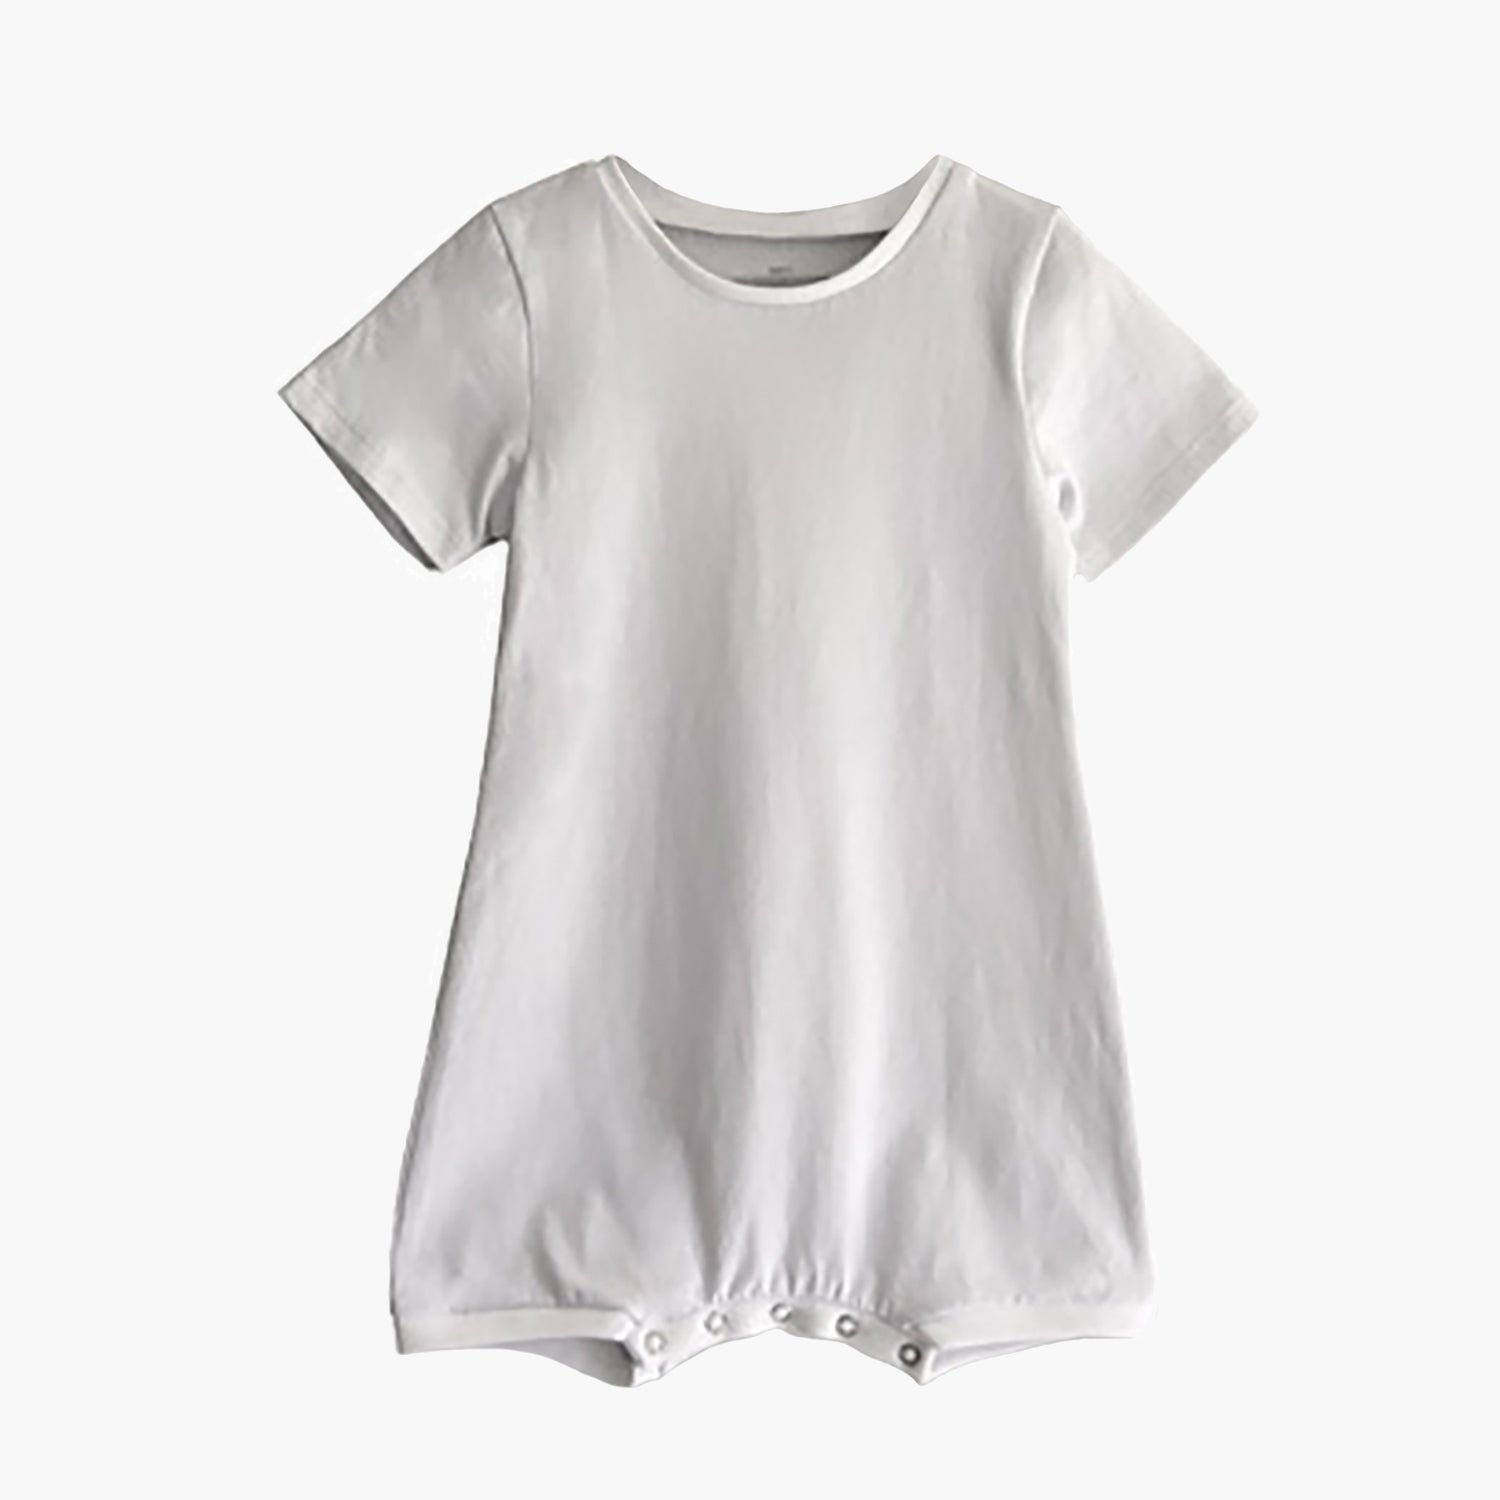 Tee shirt Wonsie adaptive bodysuit made from soft cotton fabric